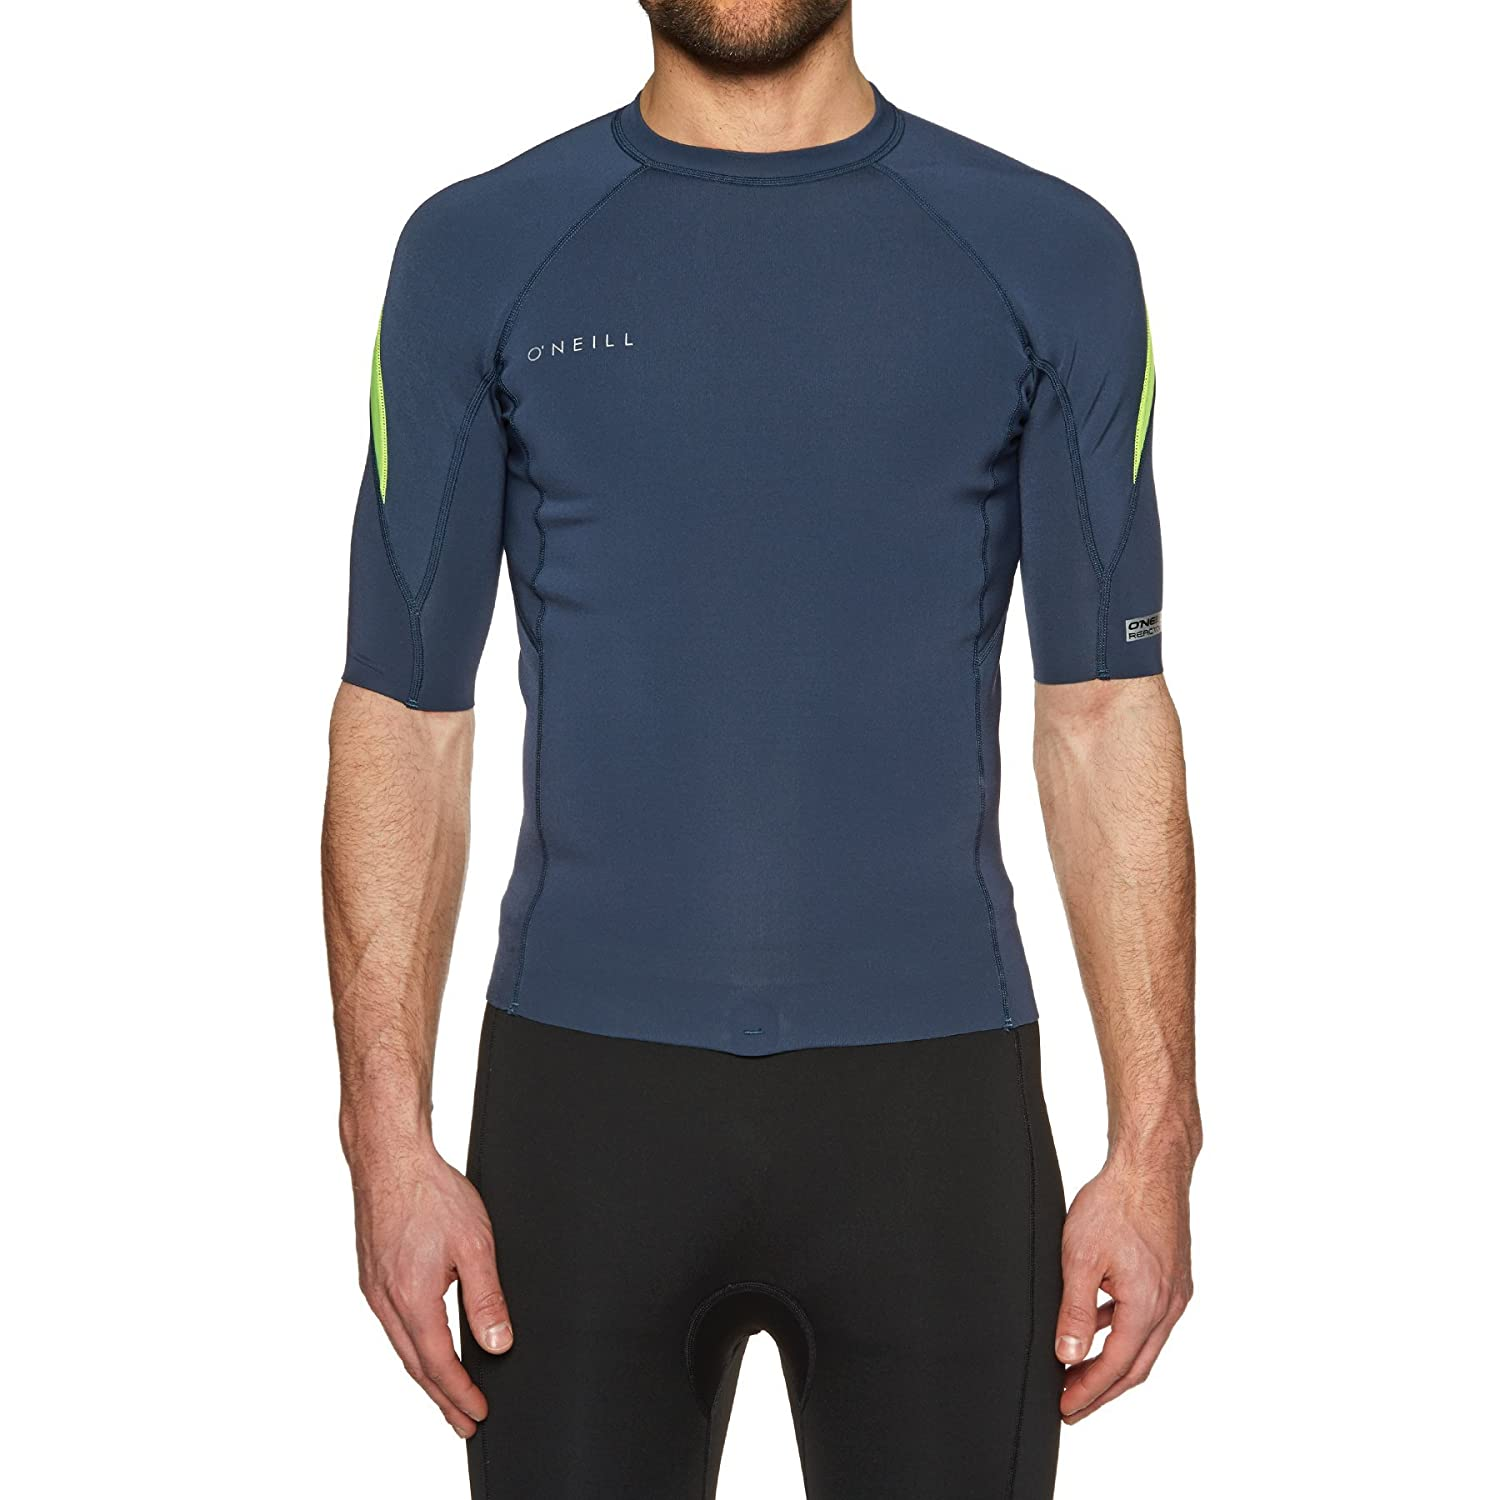 O'Neill 2018 Reactor II 1mm 1mm 1mm Neoprene Short Sleeve Top SLATE 5081 Dimensiones- - Medium L B07B8BNKG2 | prendere in considerazione